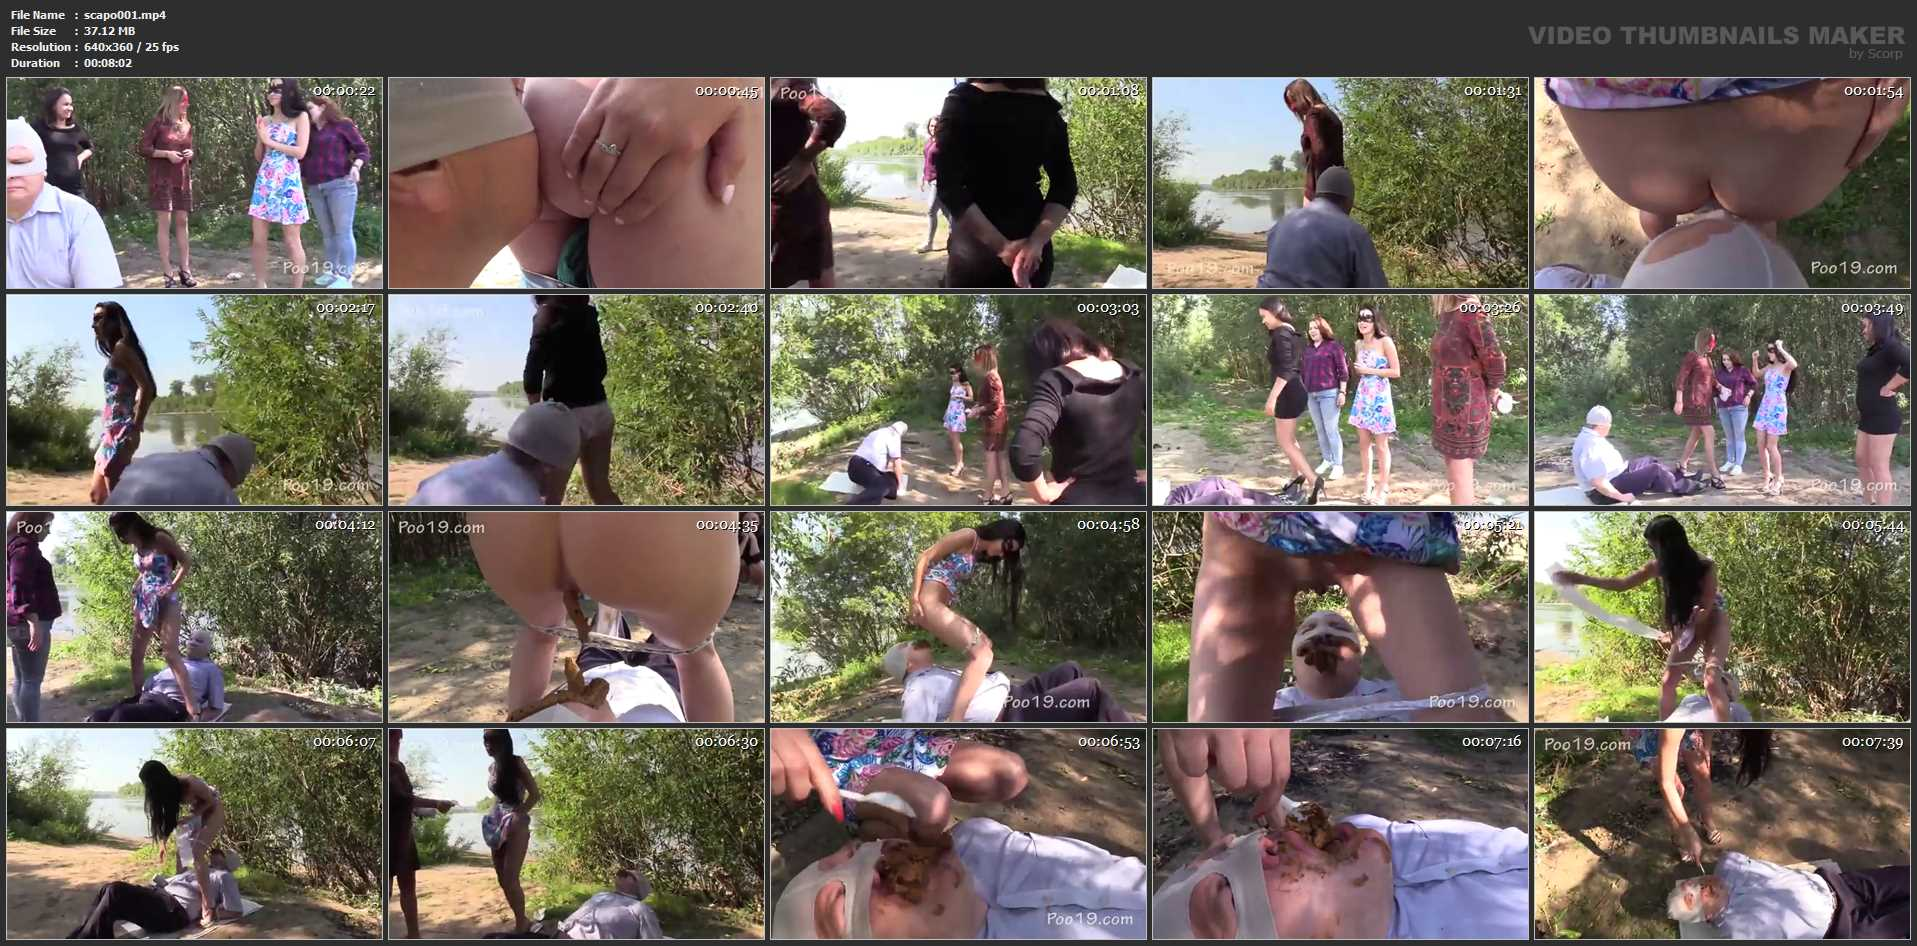 [SCAT FEMDOM MEDLEY] Russian girls shit in a man's mouth in nature 2 [LQ][360p][MP4]